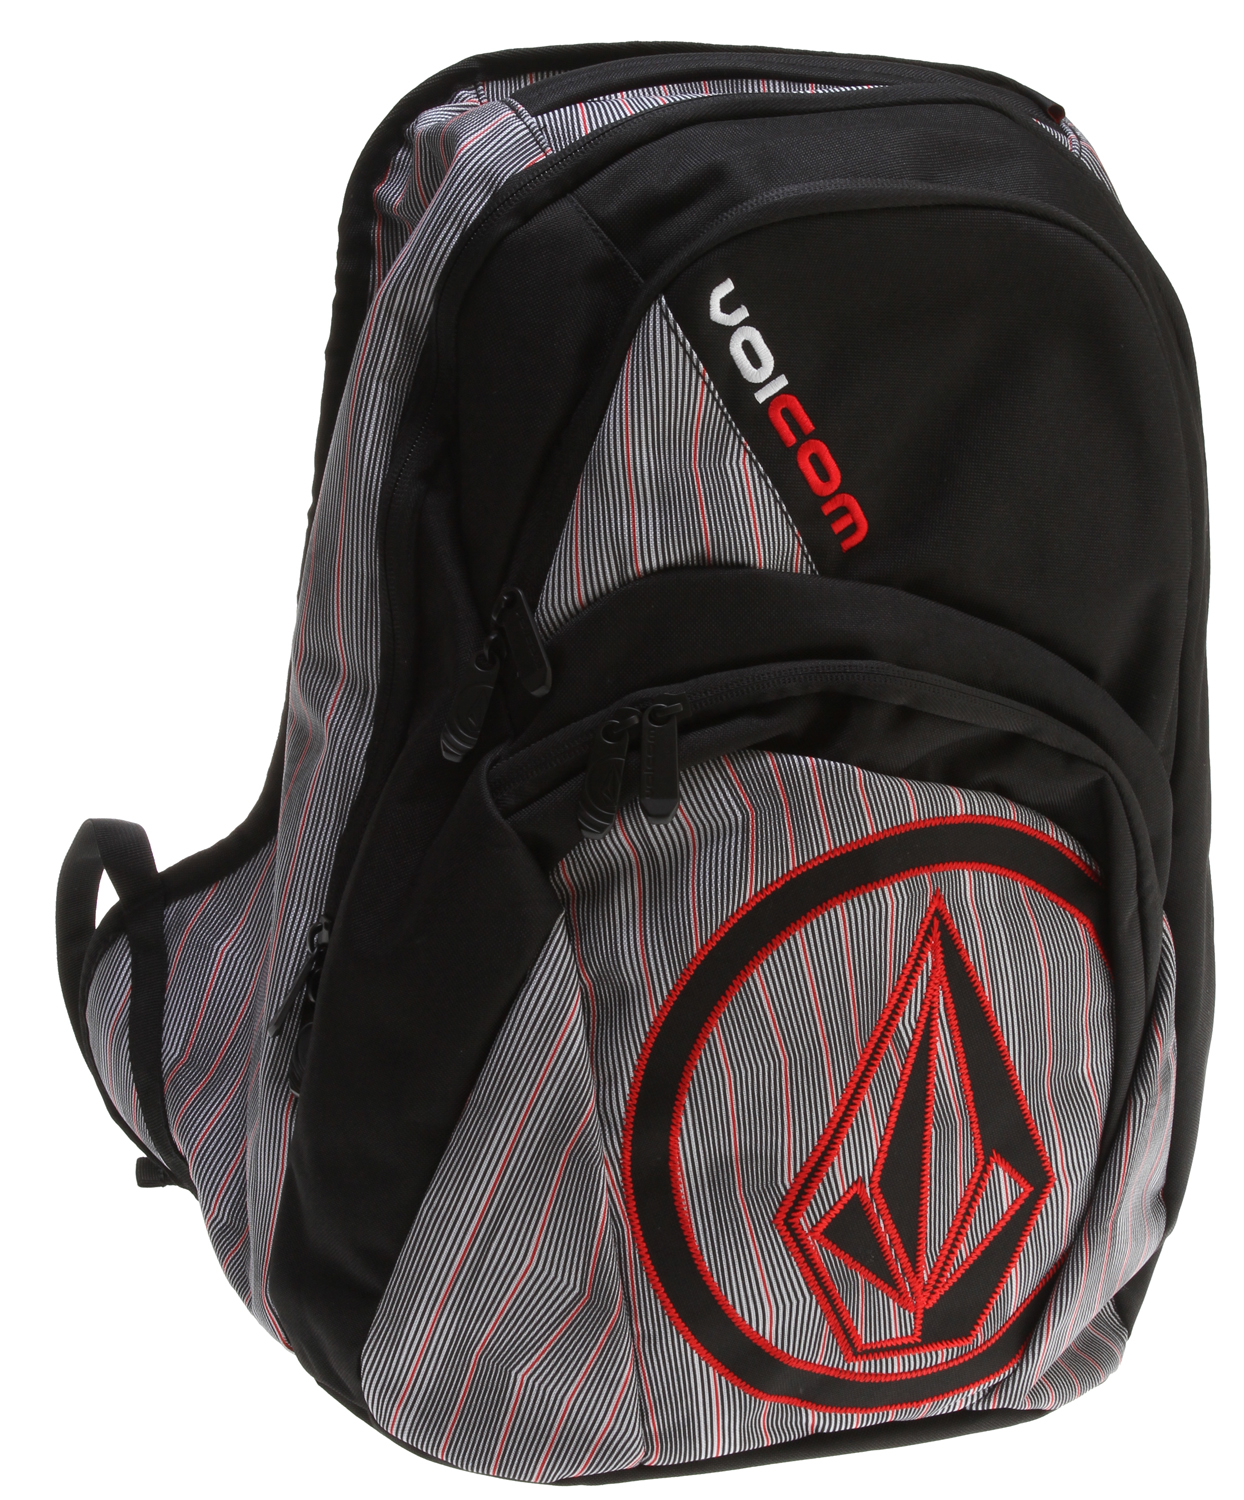 "Surf Are you tired of all the horrible looking back packs out there for sale? Don't you wish there where better looking back packs that caught your interest? Are you an adrenalin junkie? Do you love board sports? Well if you are into board sports and love adrenalin then you will probably love this Volcom Purma Backpack it's a great looking back pack at a great price. It's a great way to express your inner adrenalin junkie and carry your books at the same time. It's very light weight and durable so you will be happy for some time to come.Key Features of the Volcom Purma Backpack: Volume: 31L Dimensions: 19.75 x 13 x 7.75"" Weight: 1.4lb Four compartment backpack with 'Stone' applique and 'Volcom' embroidery As part of Volcom's V.Co-logical effort, a portion of the proceeds from the sale of this style will be donated to charities affiliated with 1% for the Planet - $34.95"